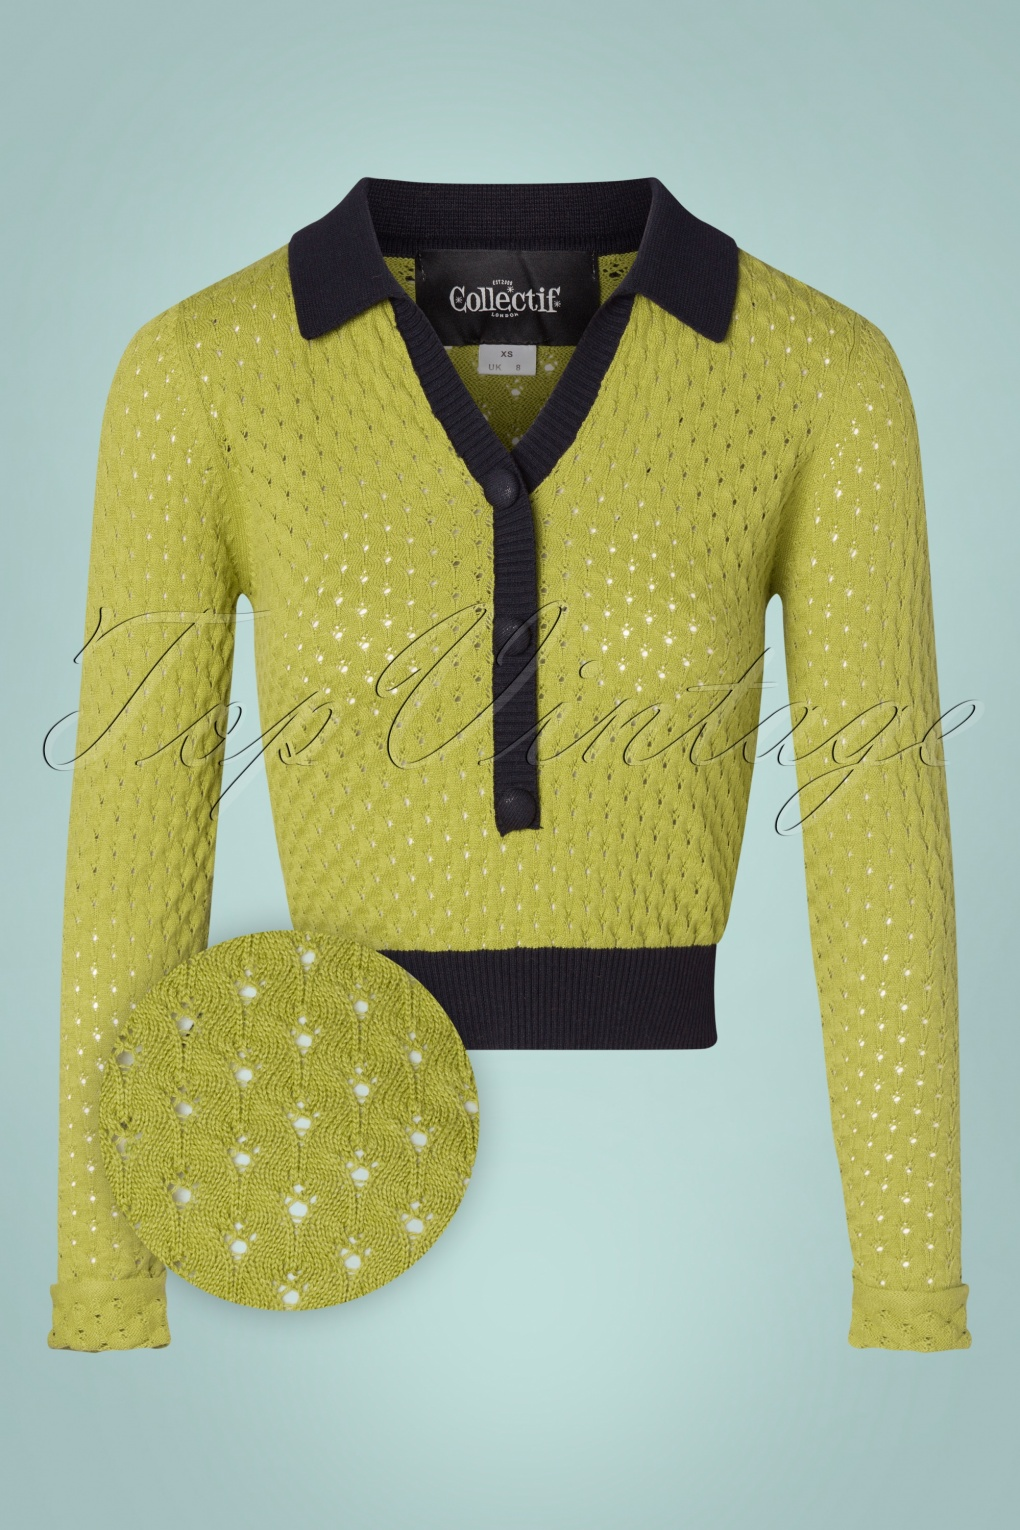 Vintage Sweaters, Retro Sweaters & Cardigan 70s Lorelei Knitted Top in Green £37.84 AT vintagedancer.com